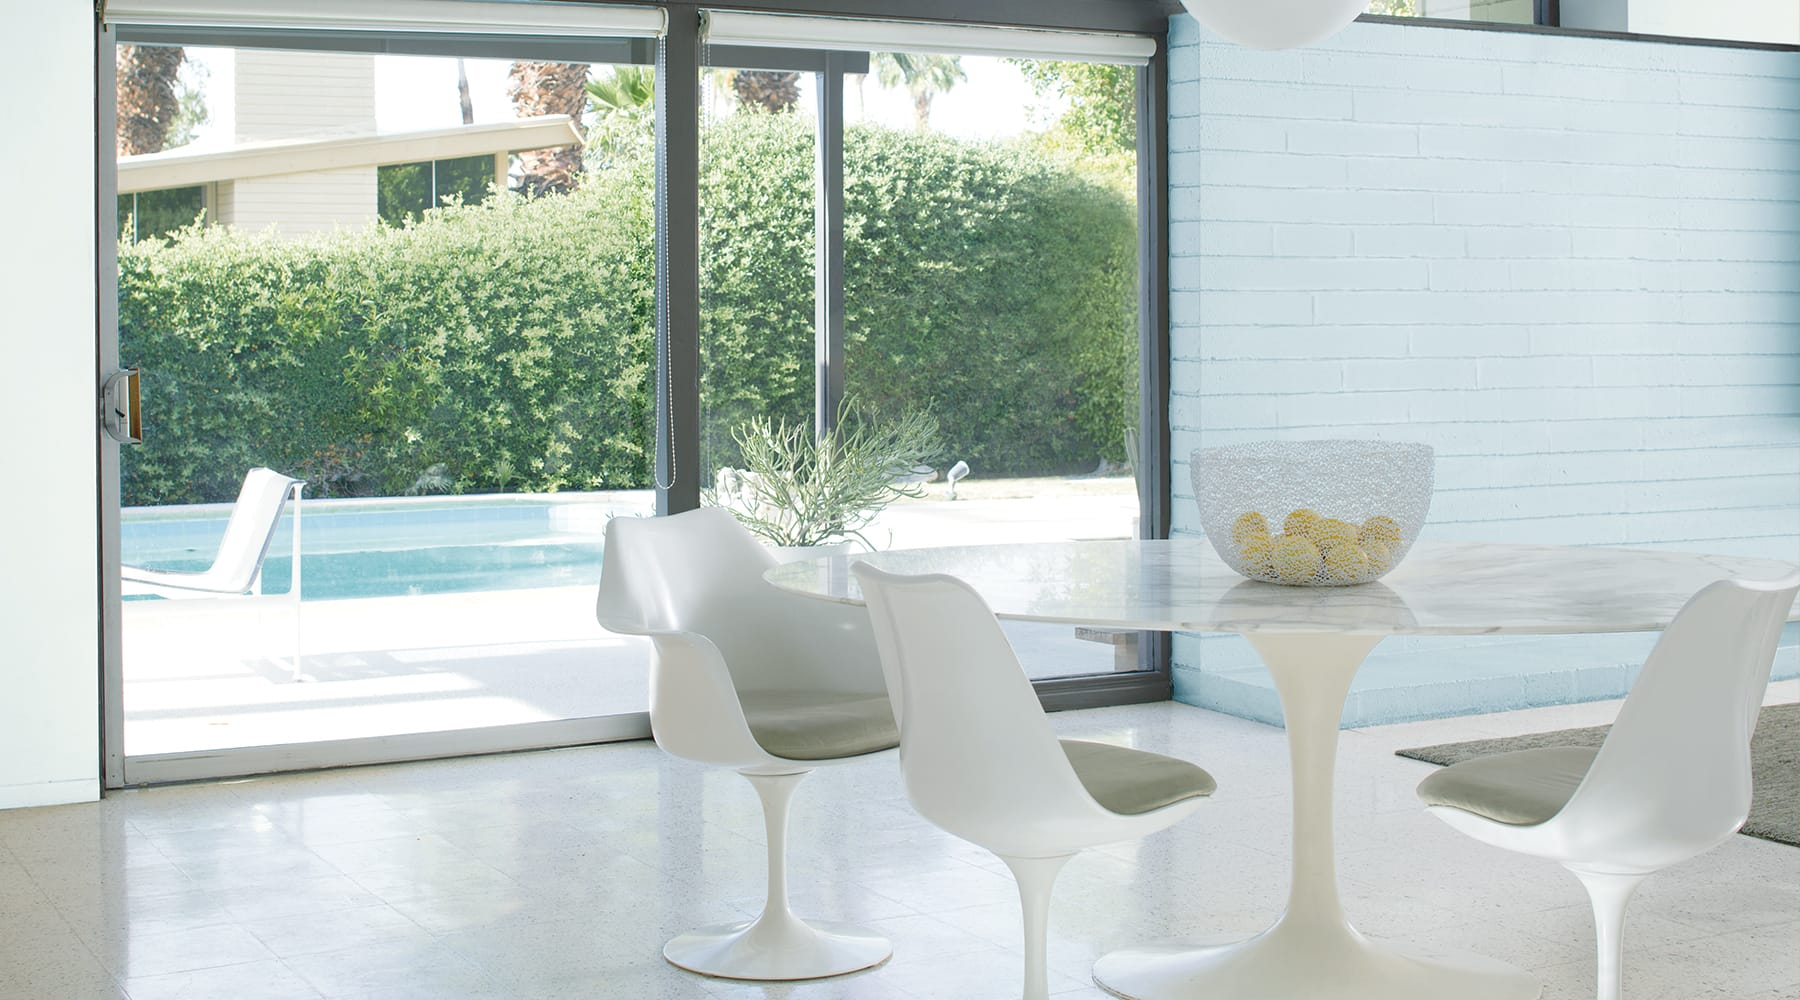 A dining room painted with Benjamin Moore with a view of a pool and greenery outside.